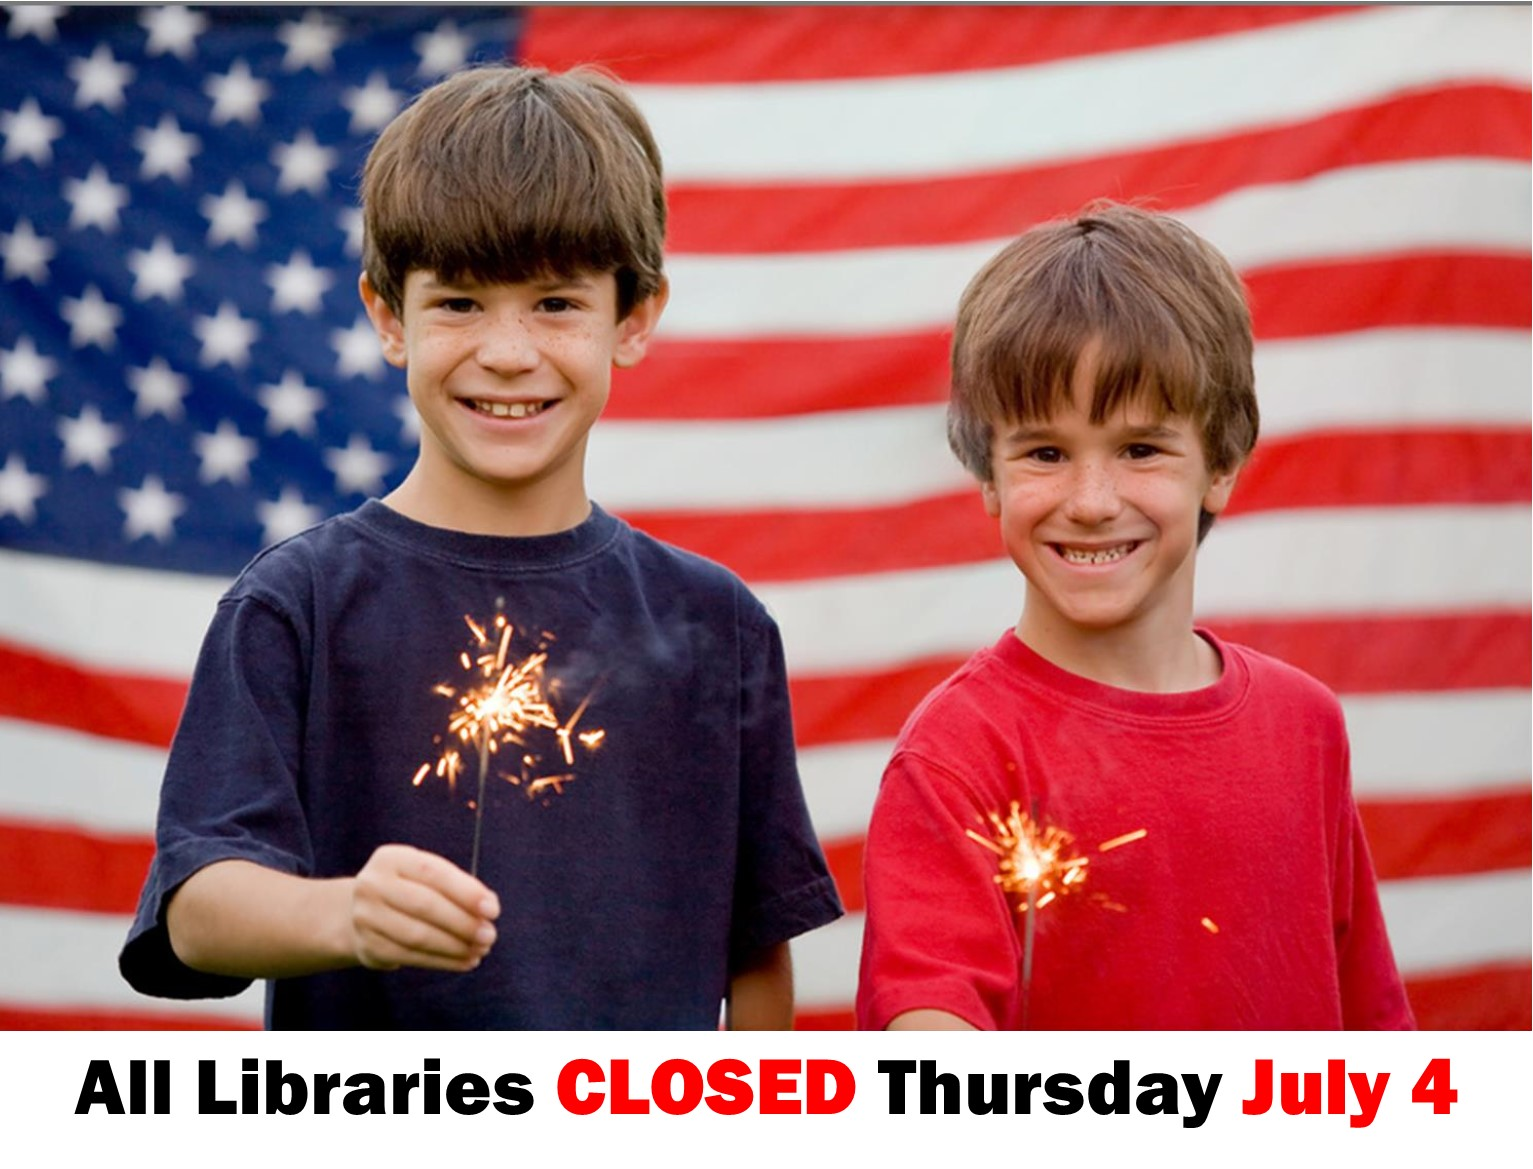 All libraries are closed for July 4 2019 on Thursday